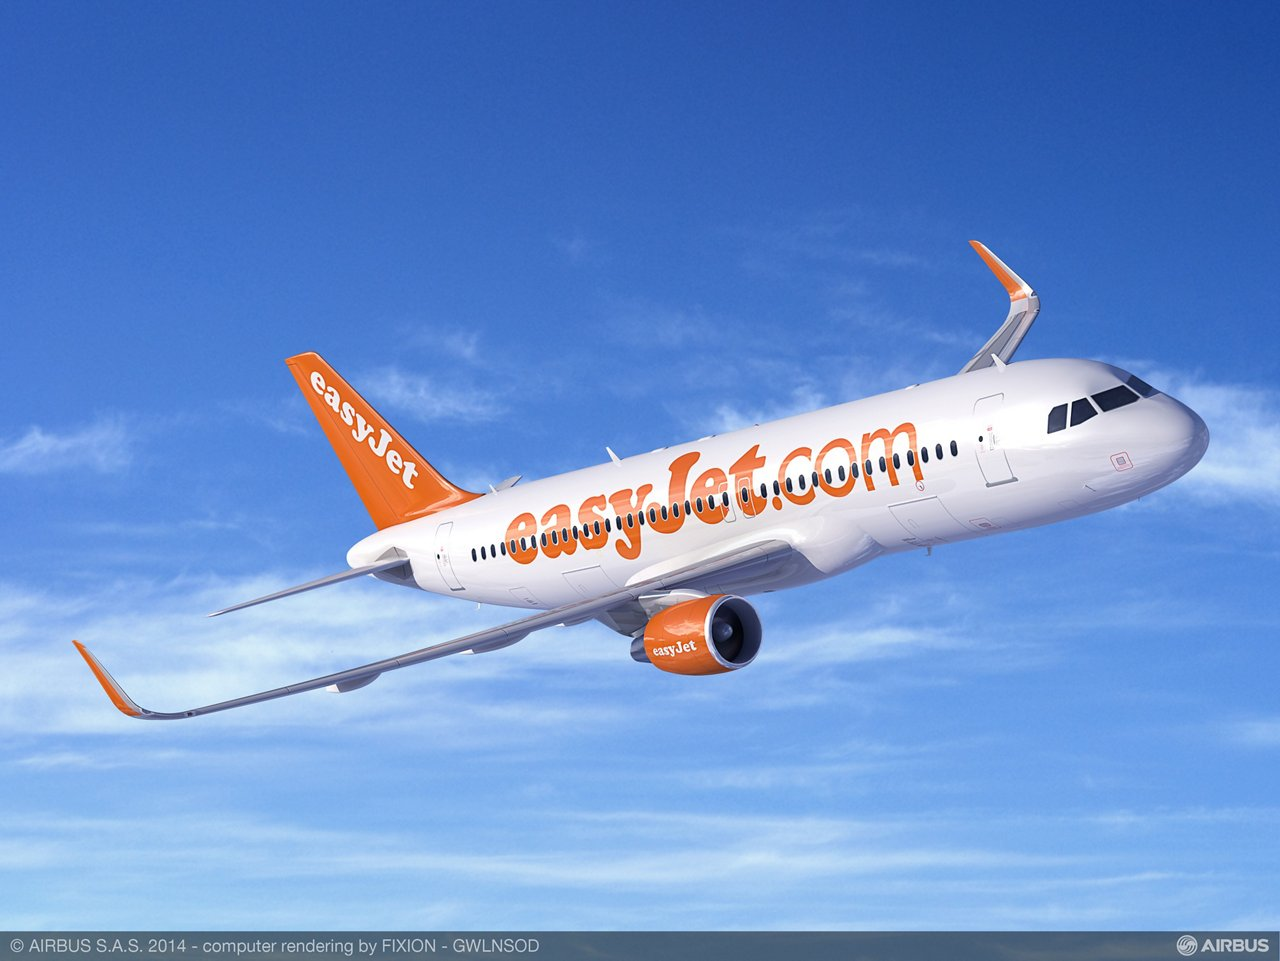 easyJet's Sharklet-equipped A320ceo